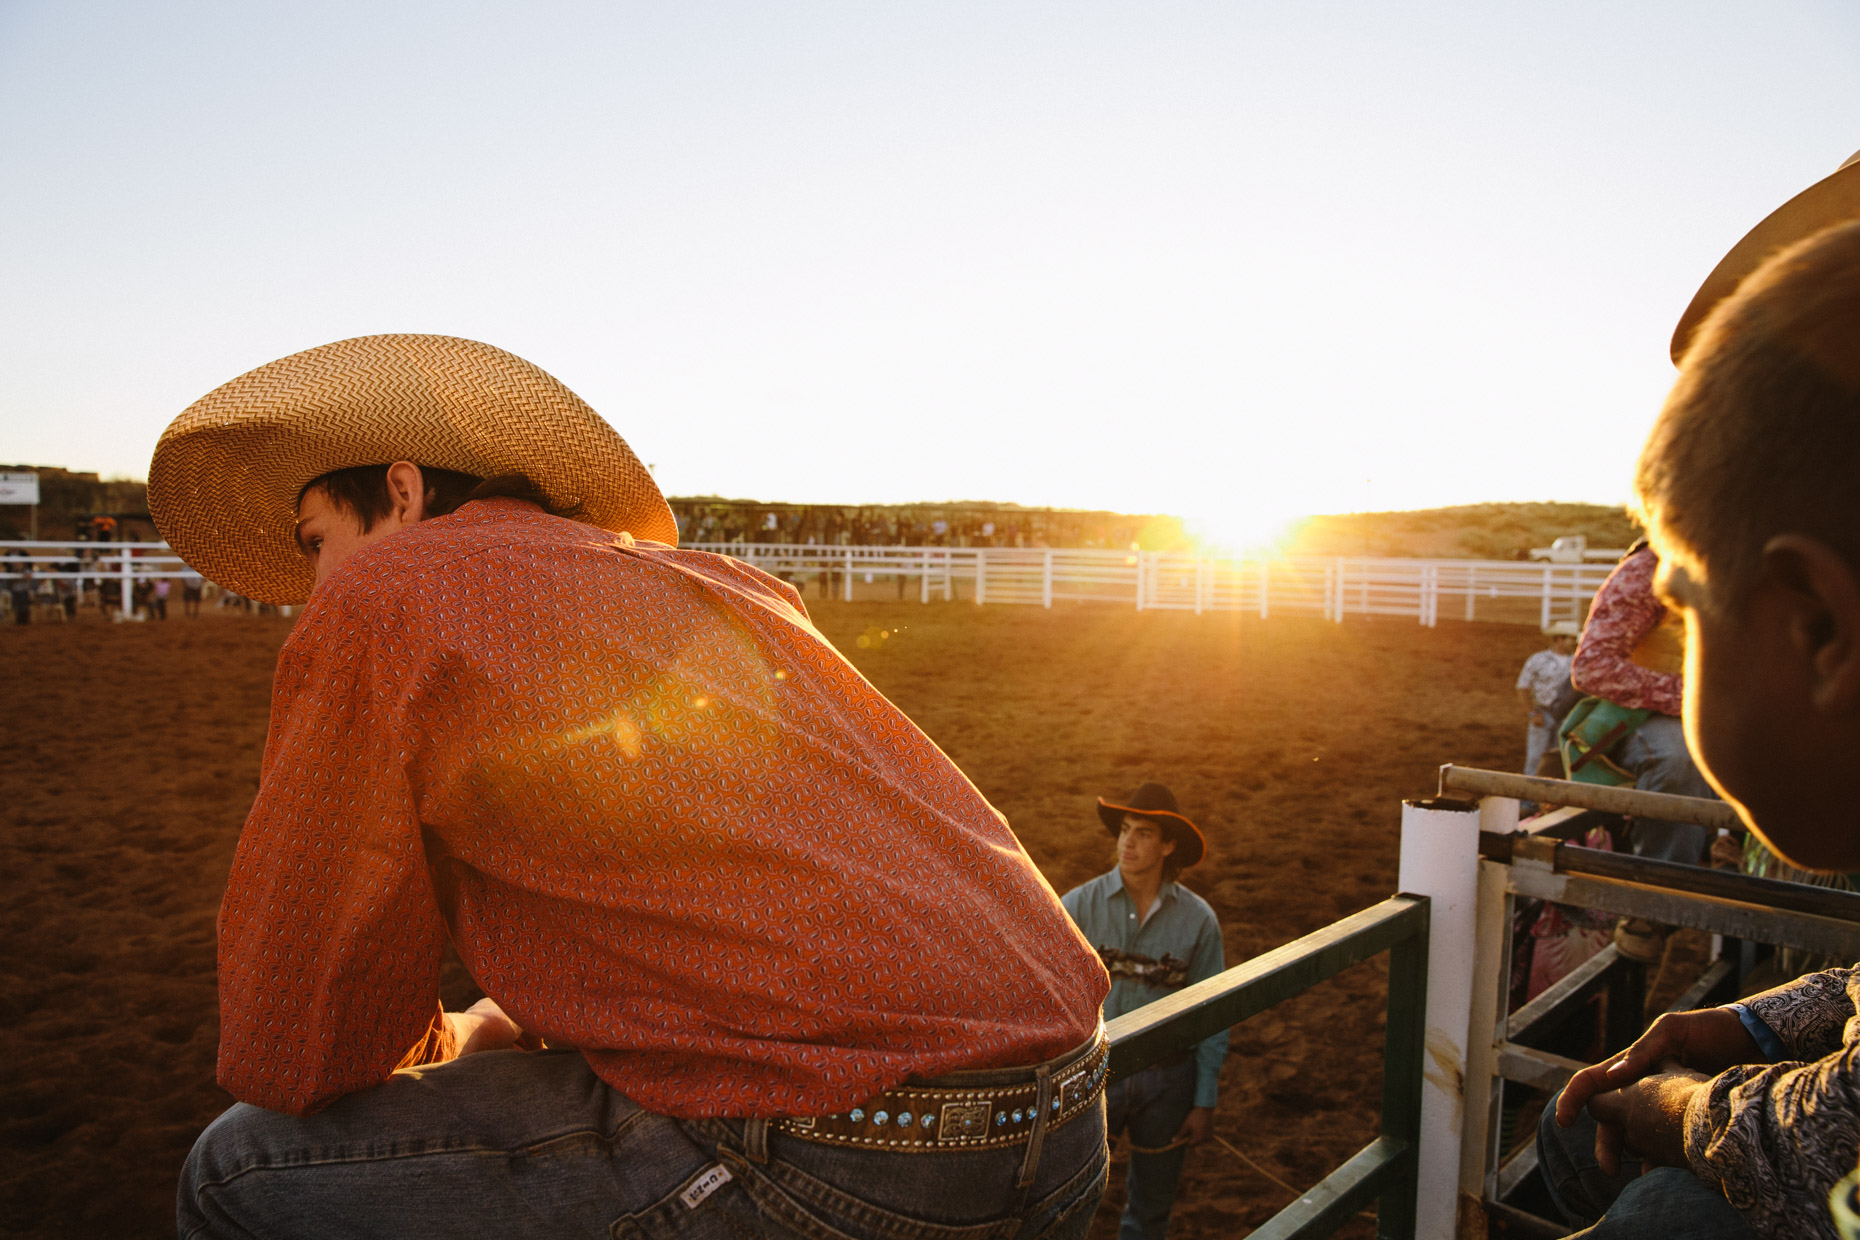 Rodeo photographer